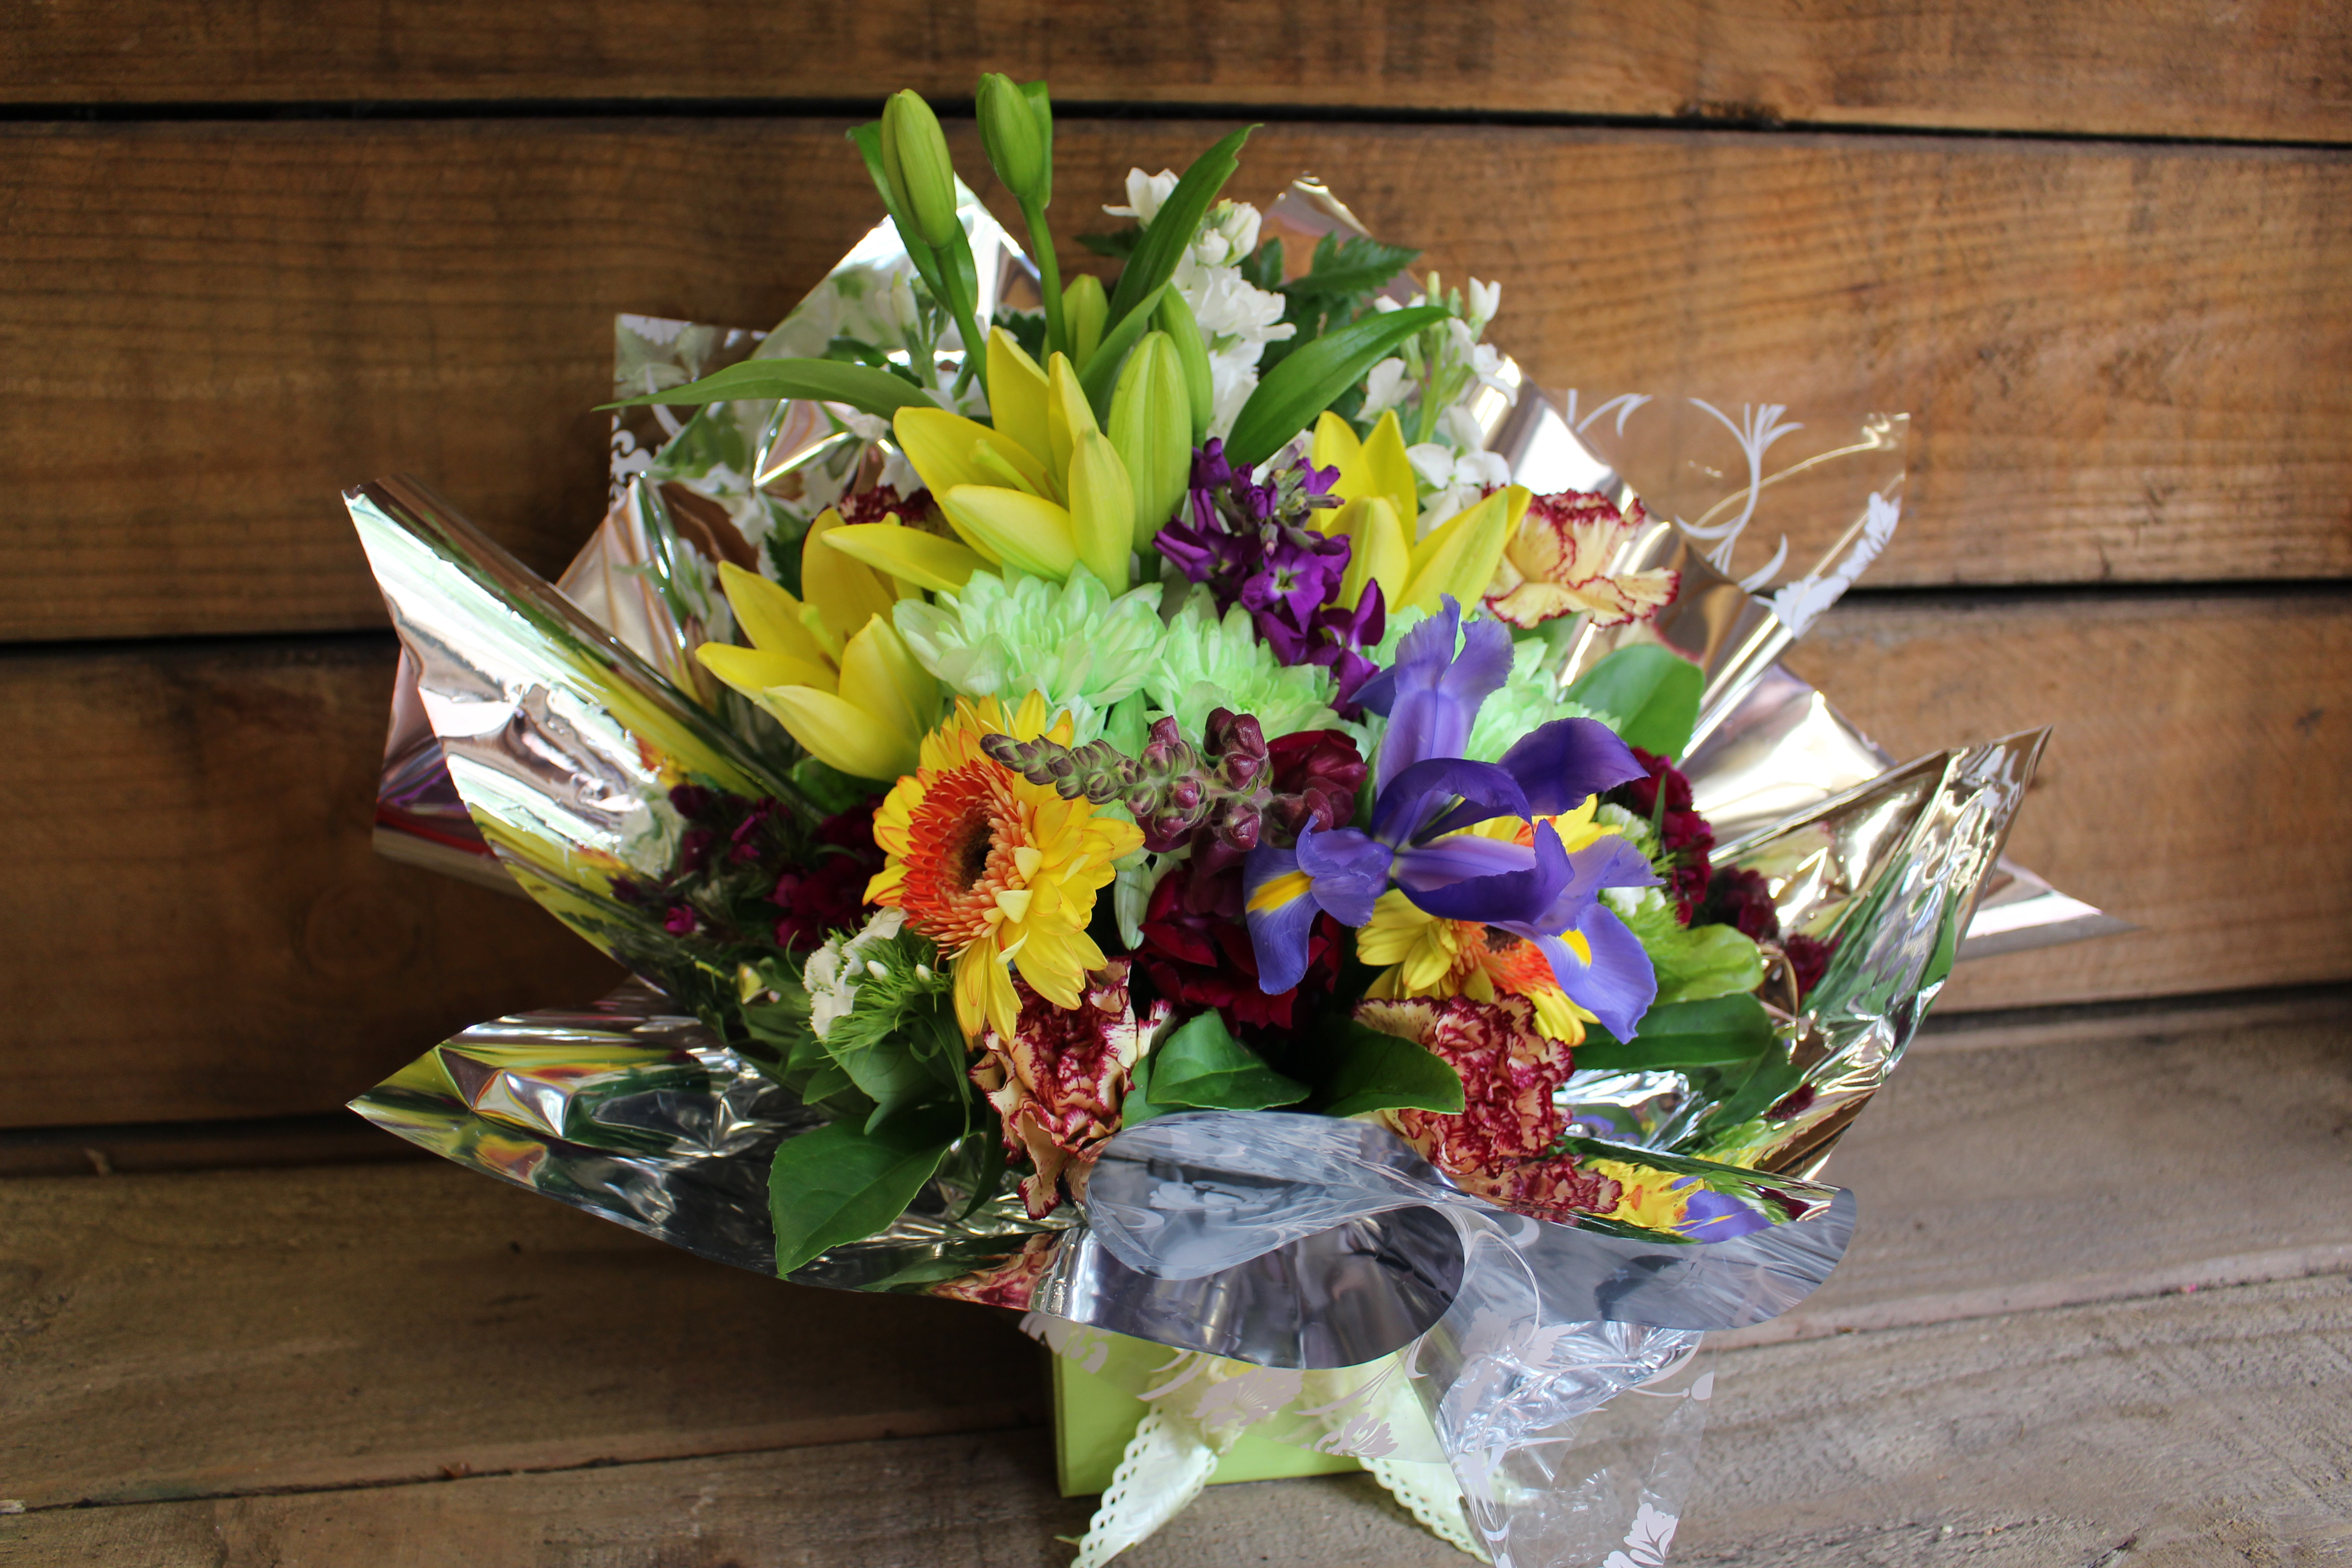 Box 7 c tiger lily mixed flower flowers of bethlehem box 7 c tiger lily mixed flower izmirmasajfo